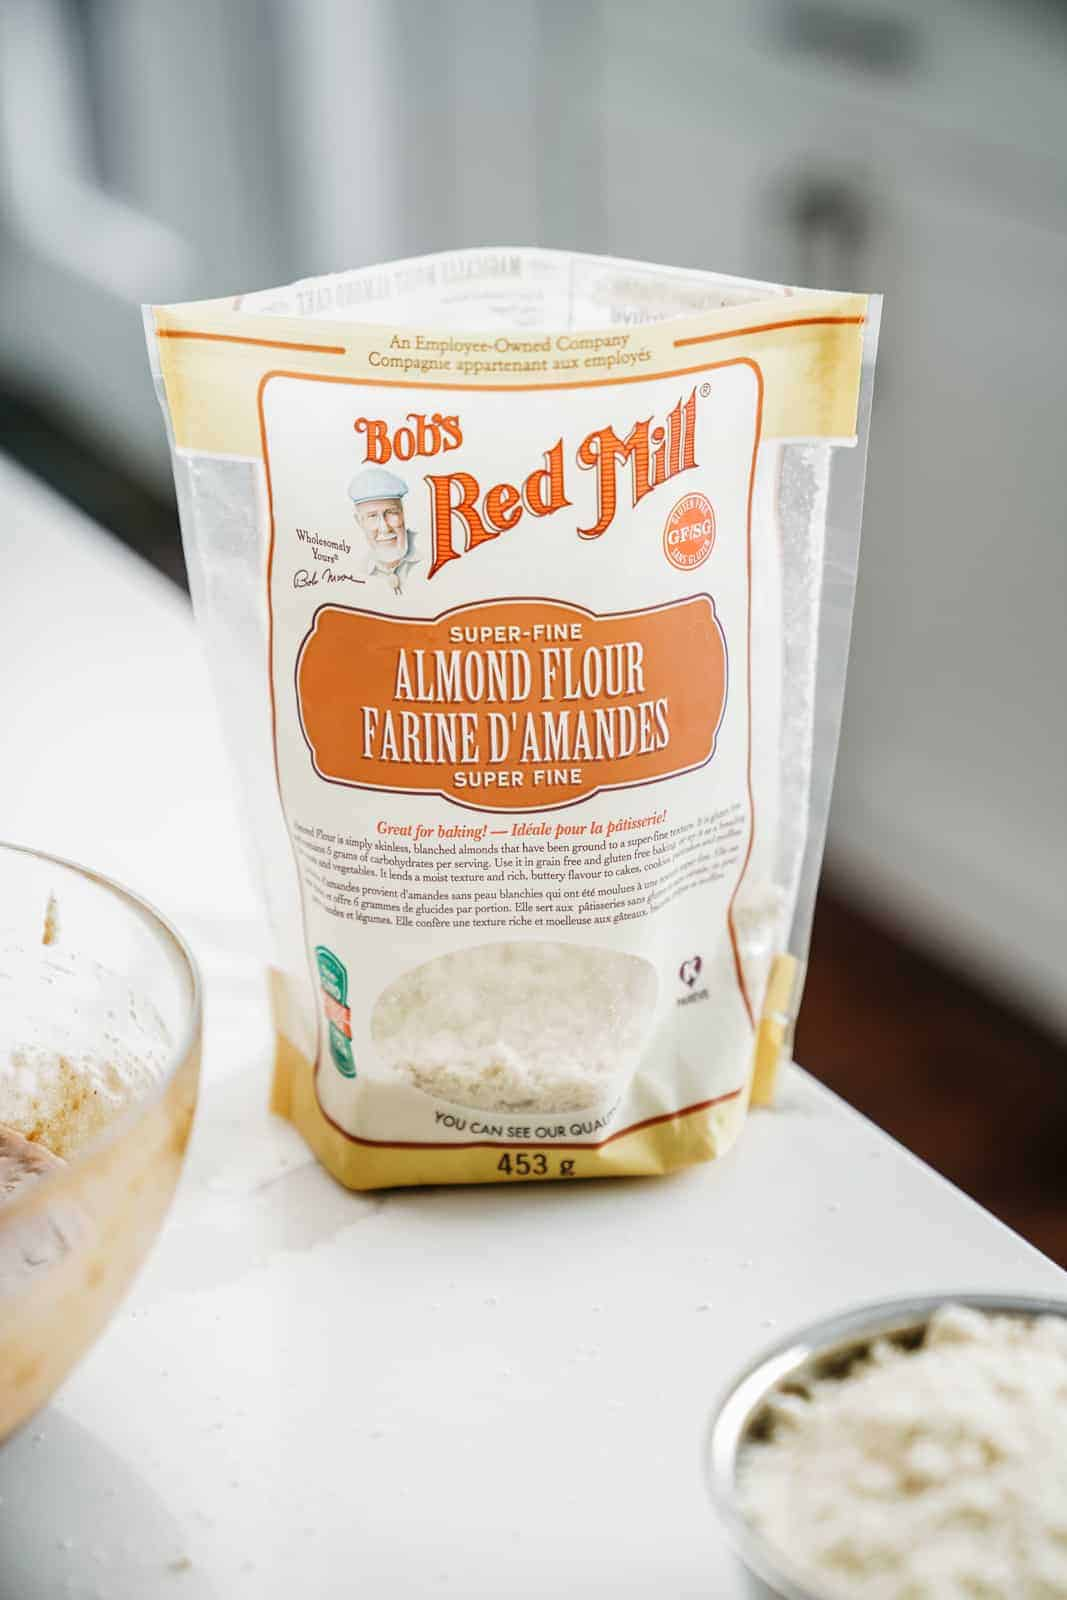 Bag of Bob's Red Mill Almond Flour sitting on counter.